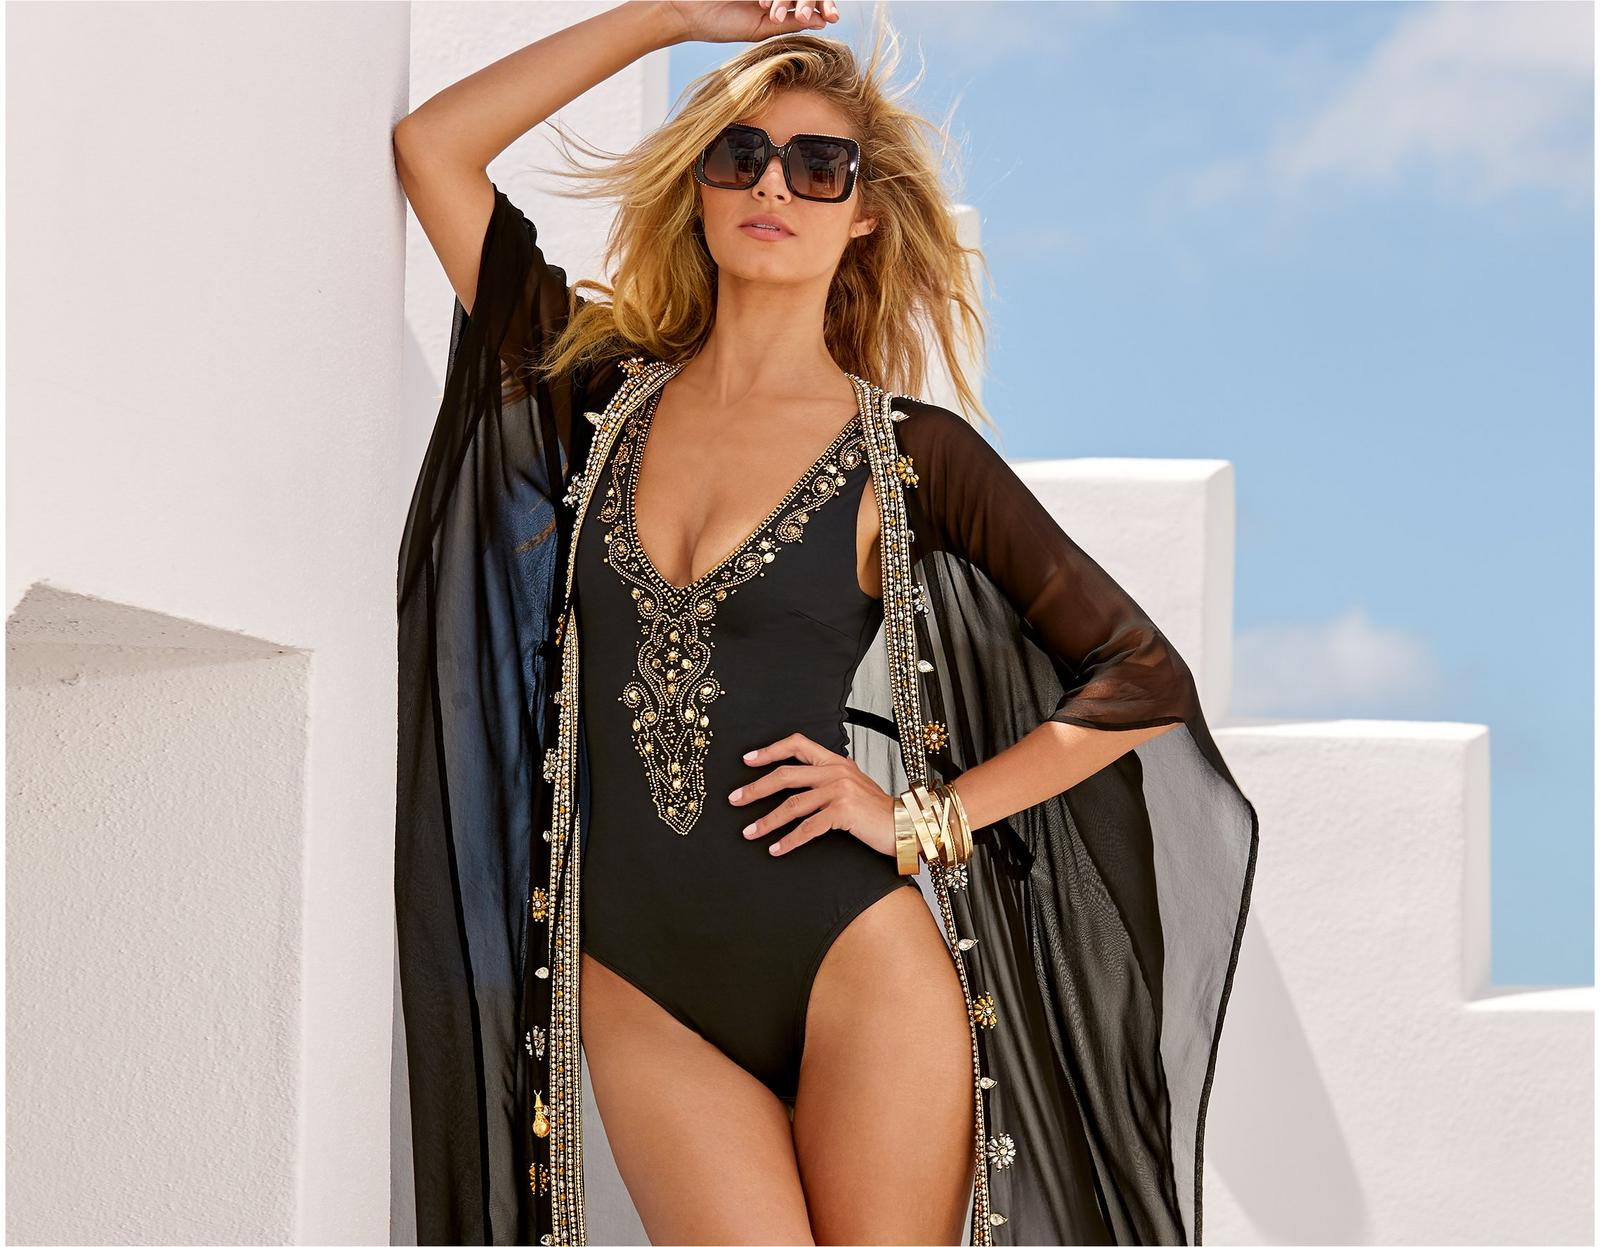 model wearing a black one-piece swimsuit with gold embellishments with the matching cover-up and statement sunglasses.